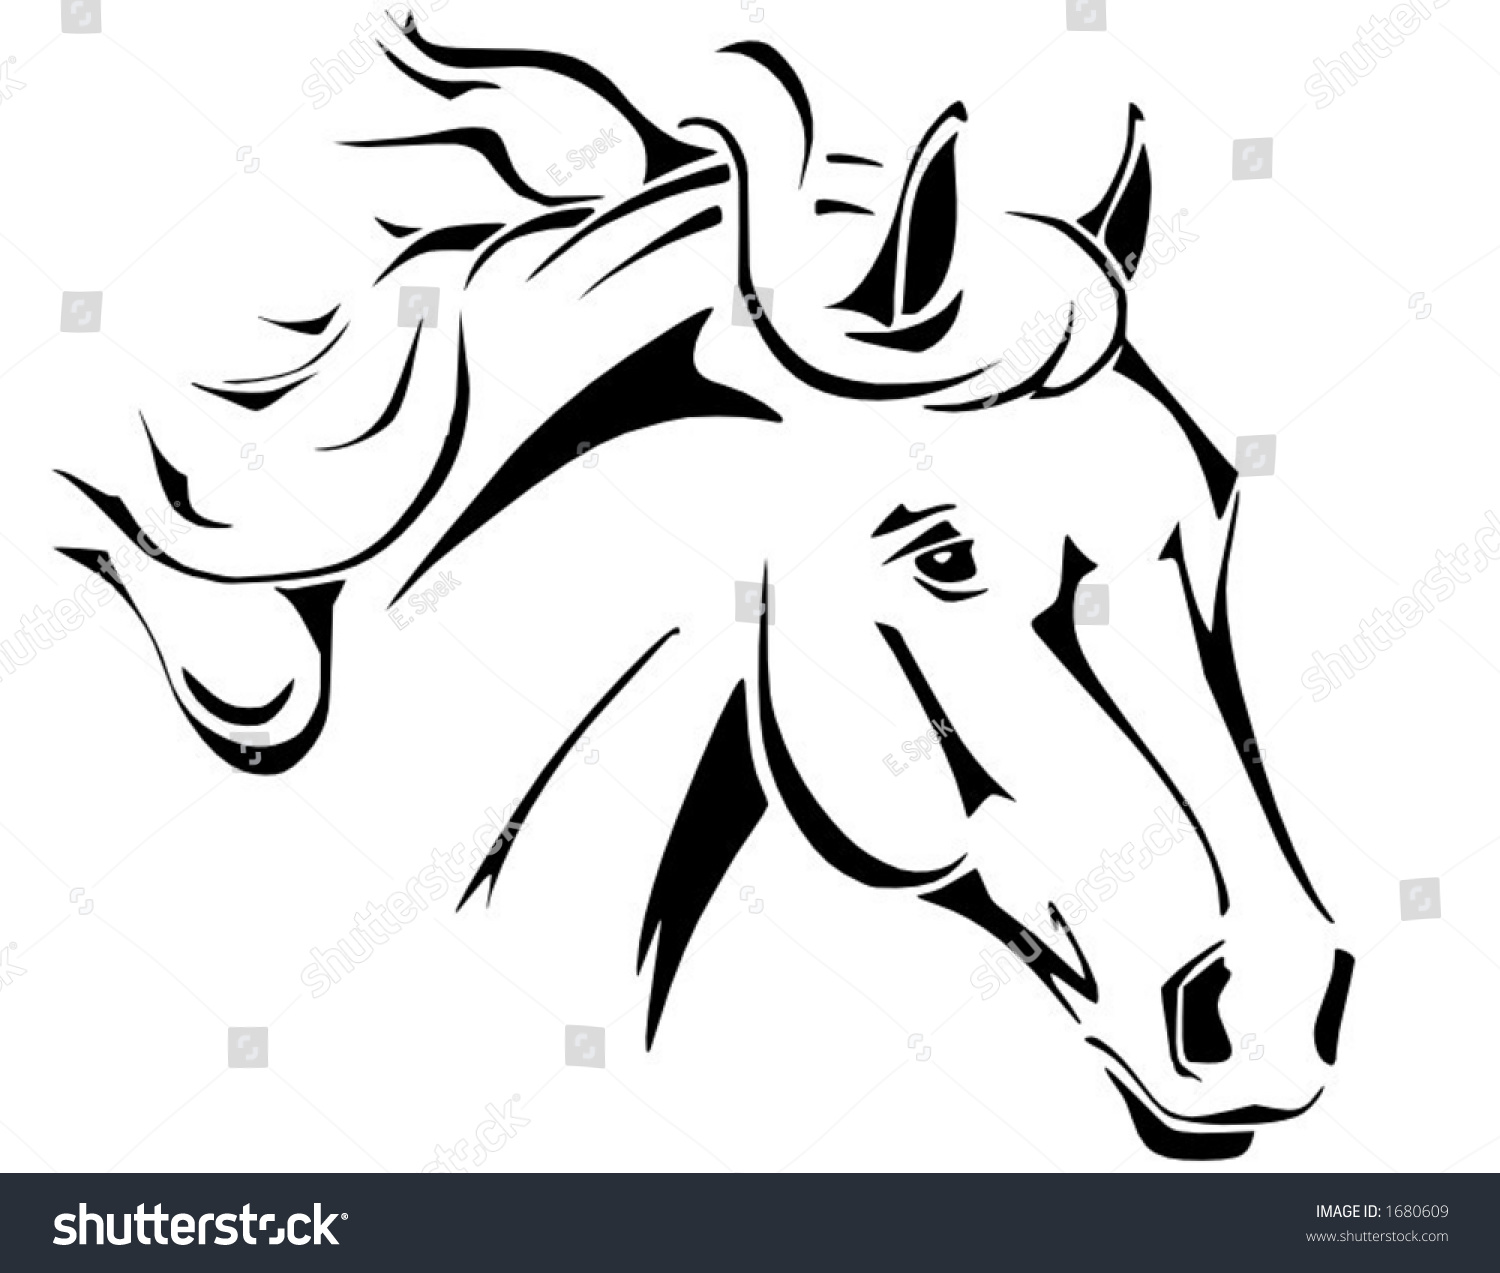 tribal horse head design perfect logo stock vector 1680609 shutterstock. Black Bedroom Furniture Sets. Home Design Ideas